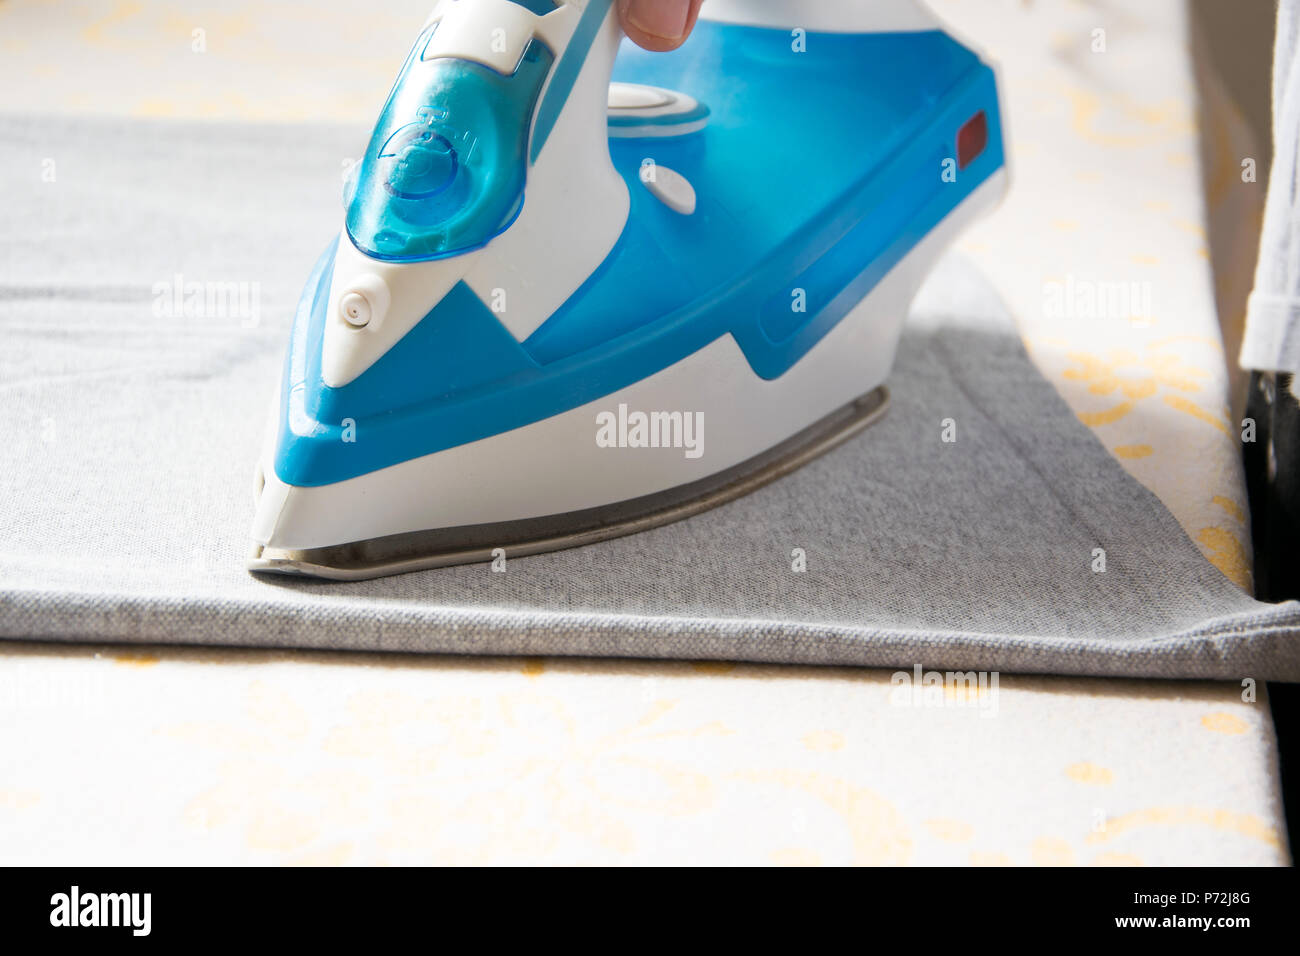 Close up view of female hand ironing a t-shirt with steam iron, housework concept - Stock Image